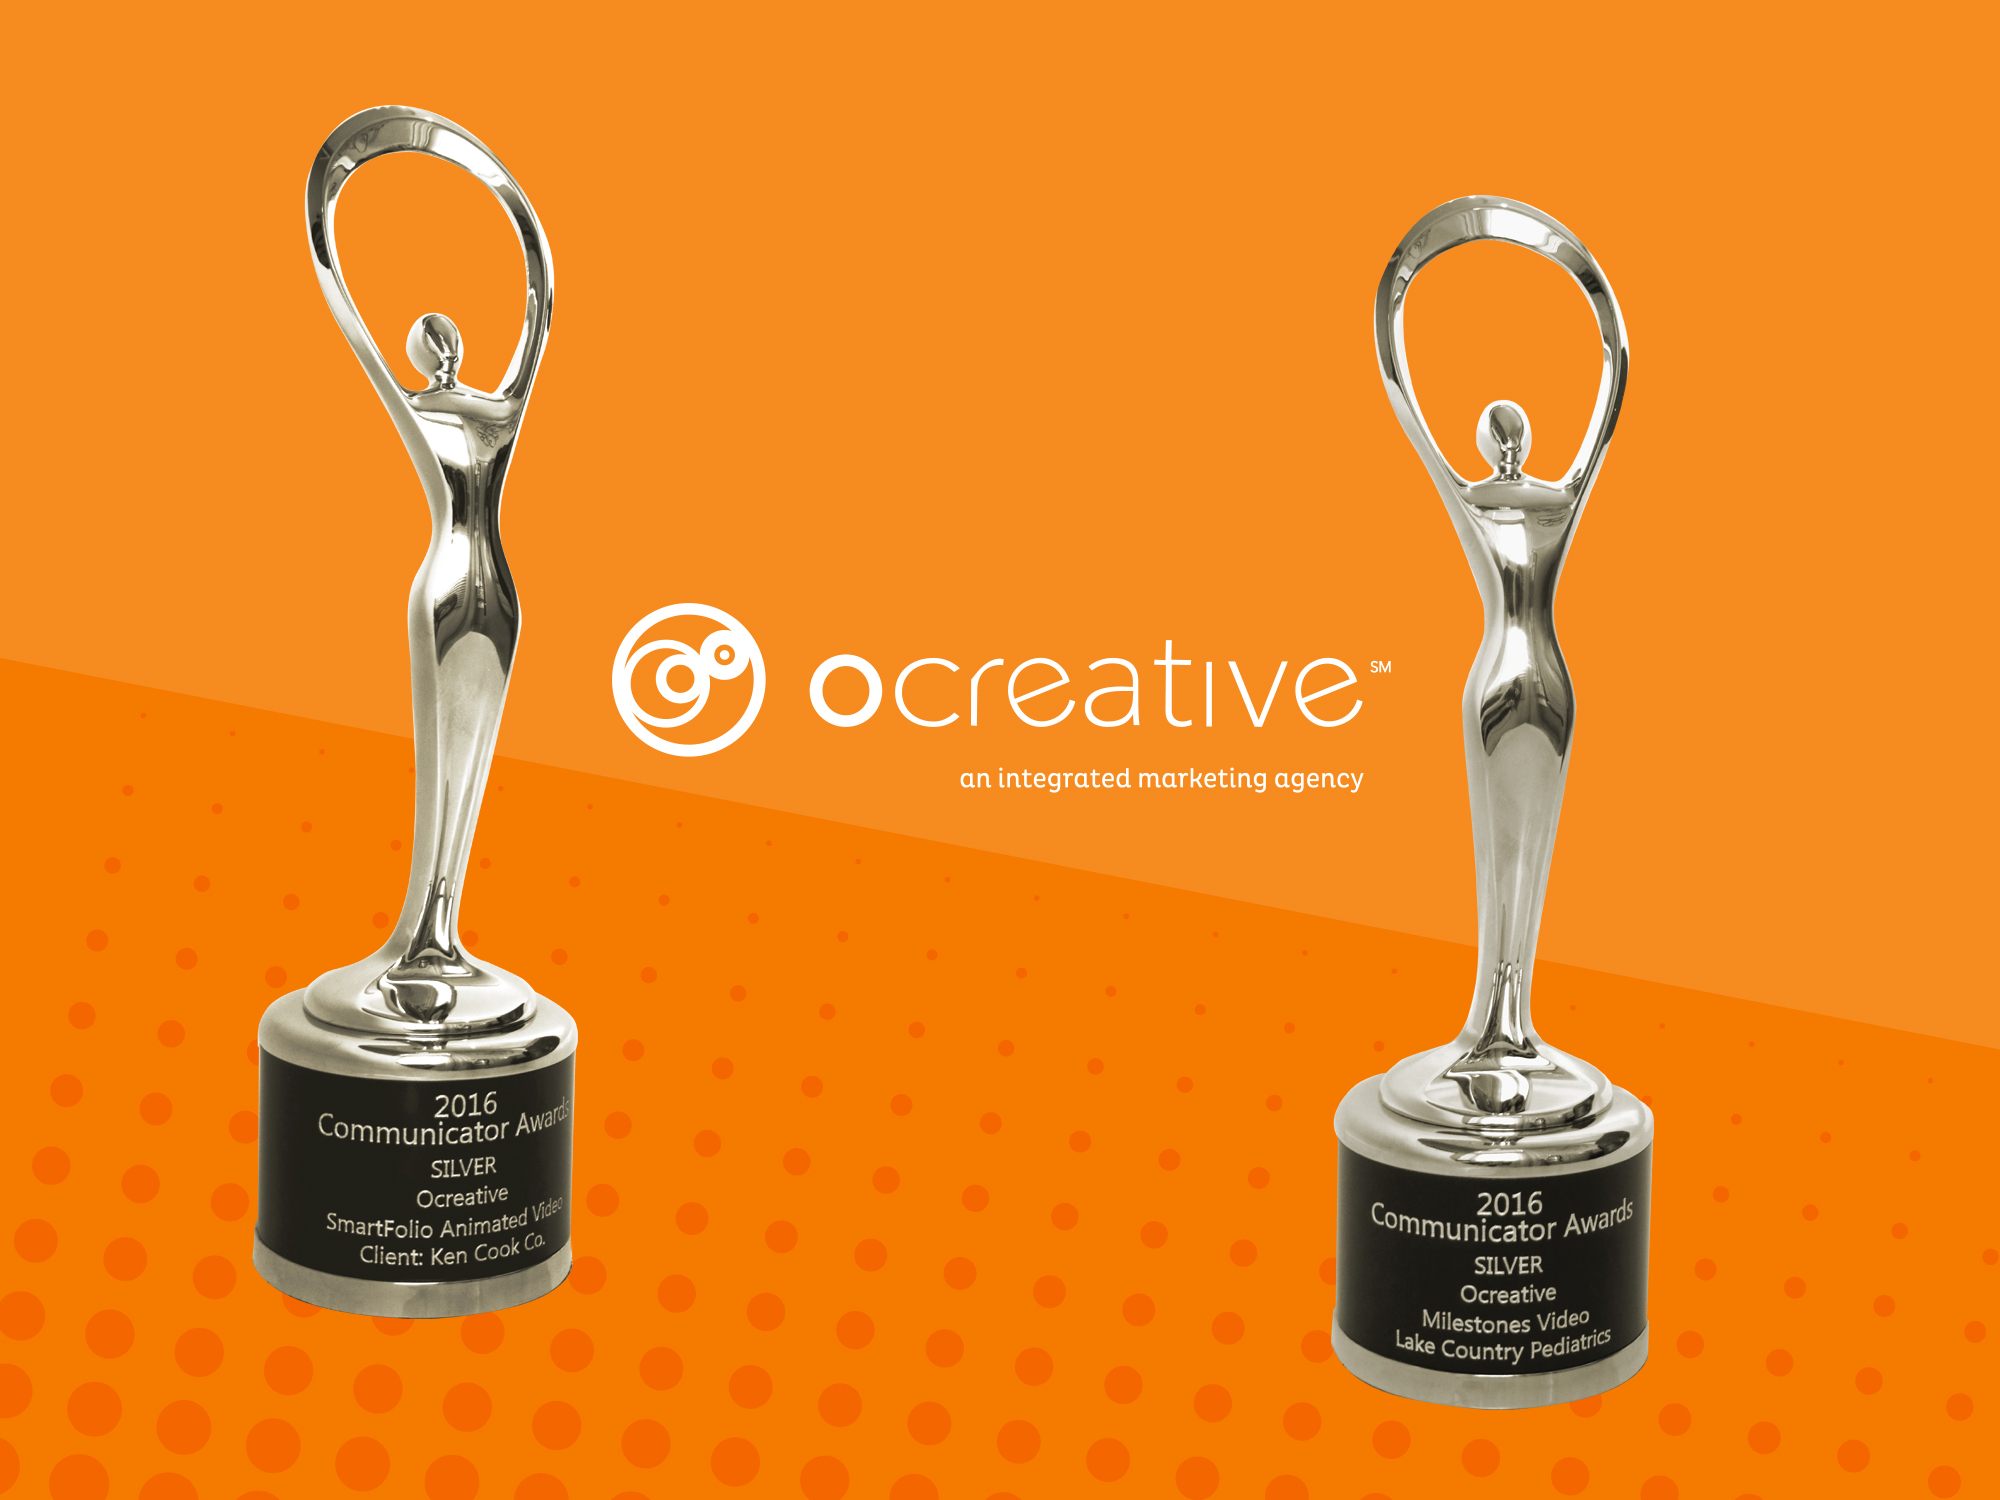 Ocreative - Award Winning Marketing Agency